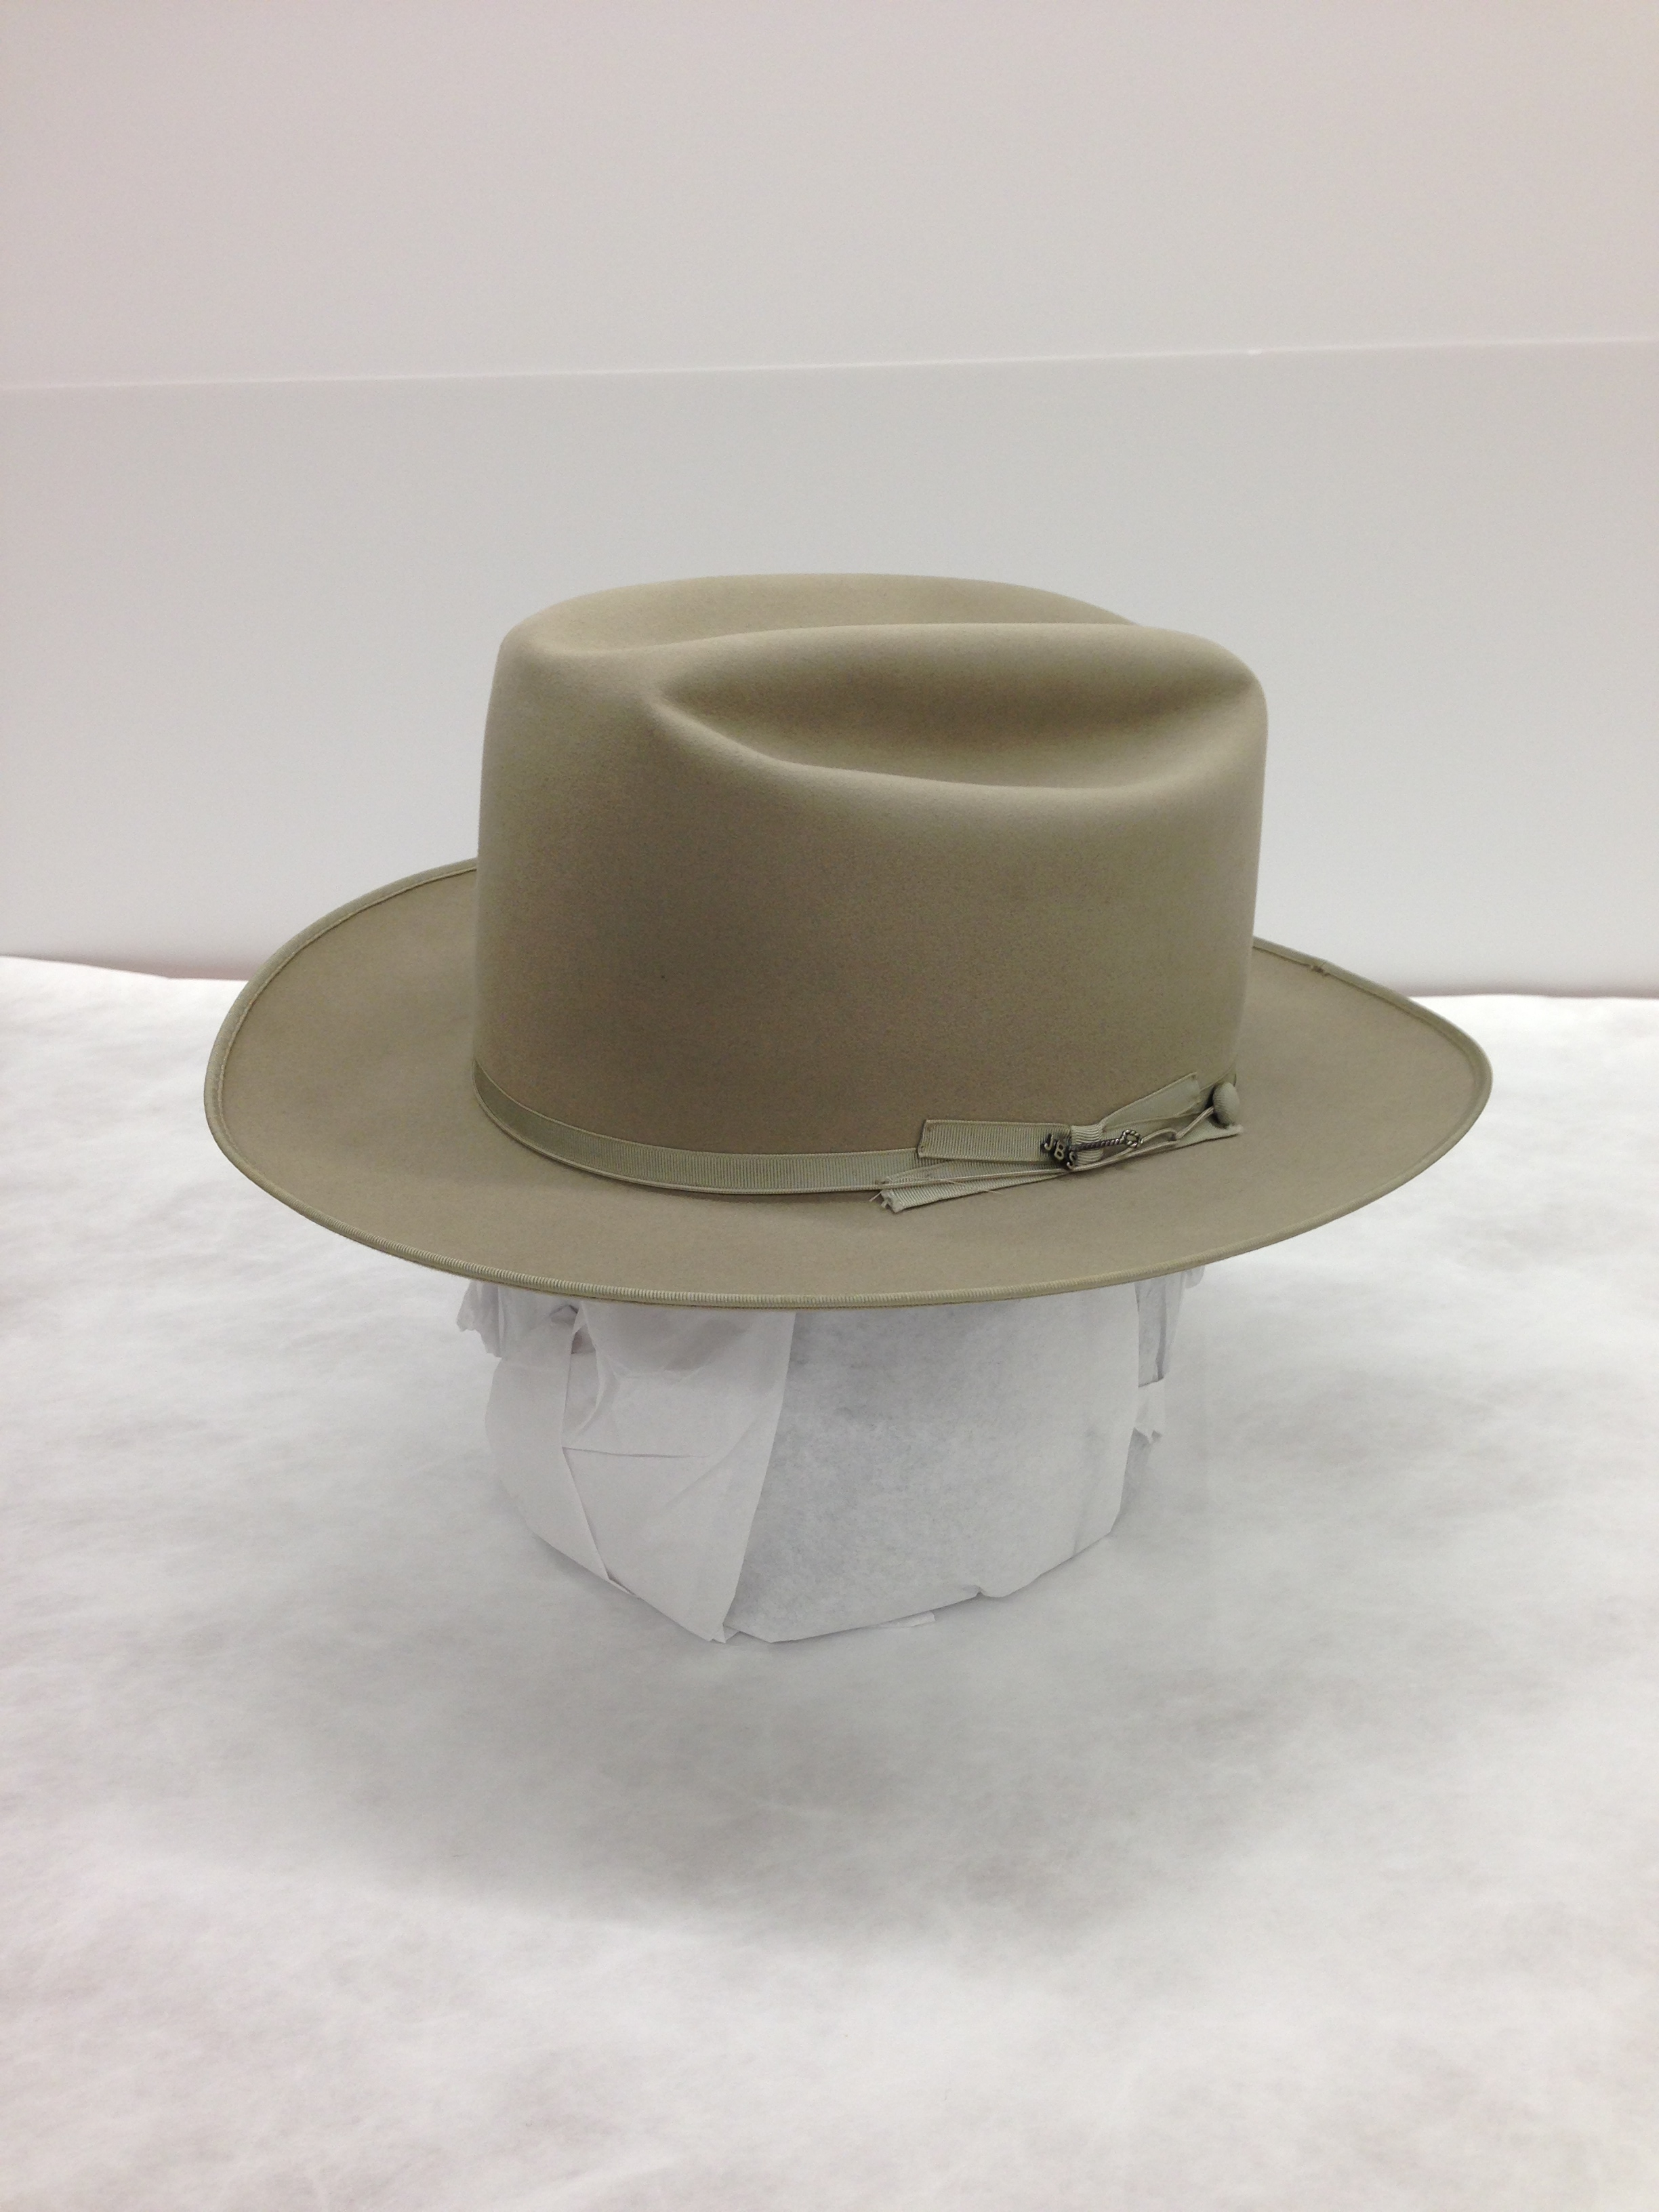 Texas Hat John F Kennedy Would Never Wear F2D11637673 on Latest White House Briefing